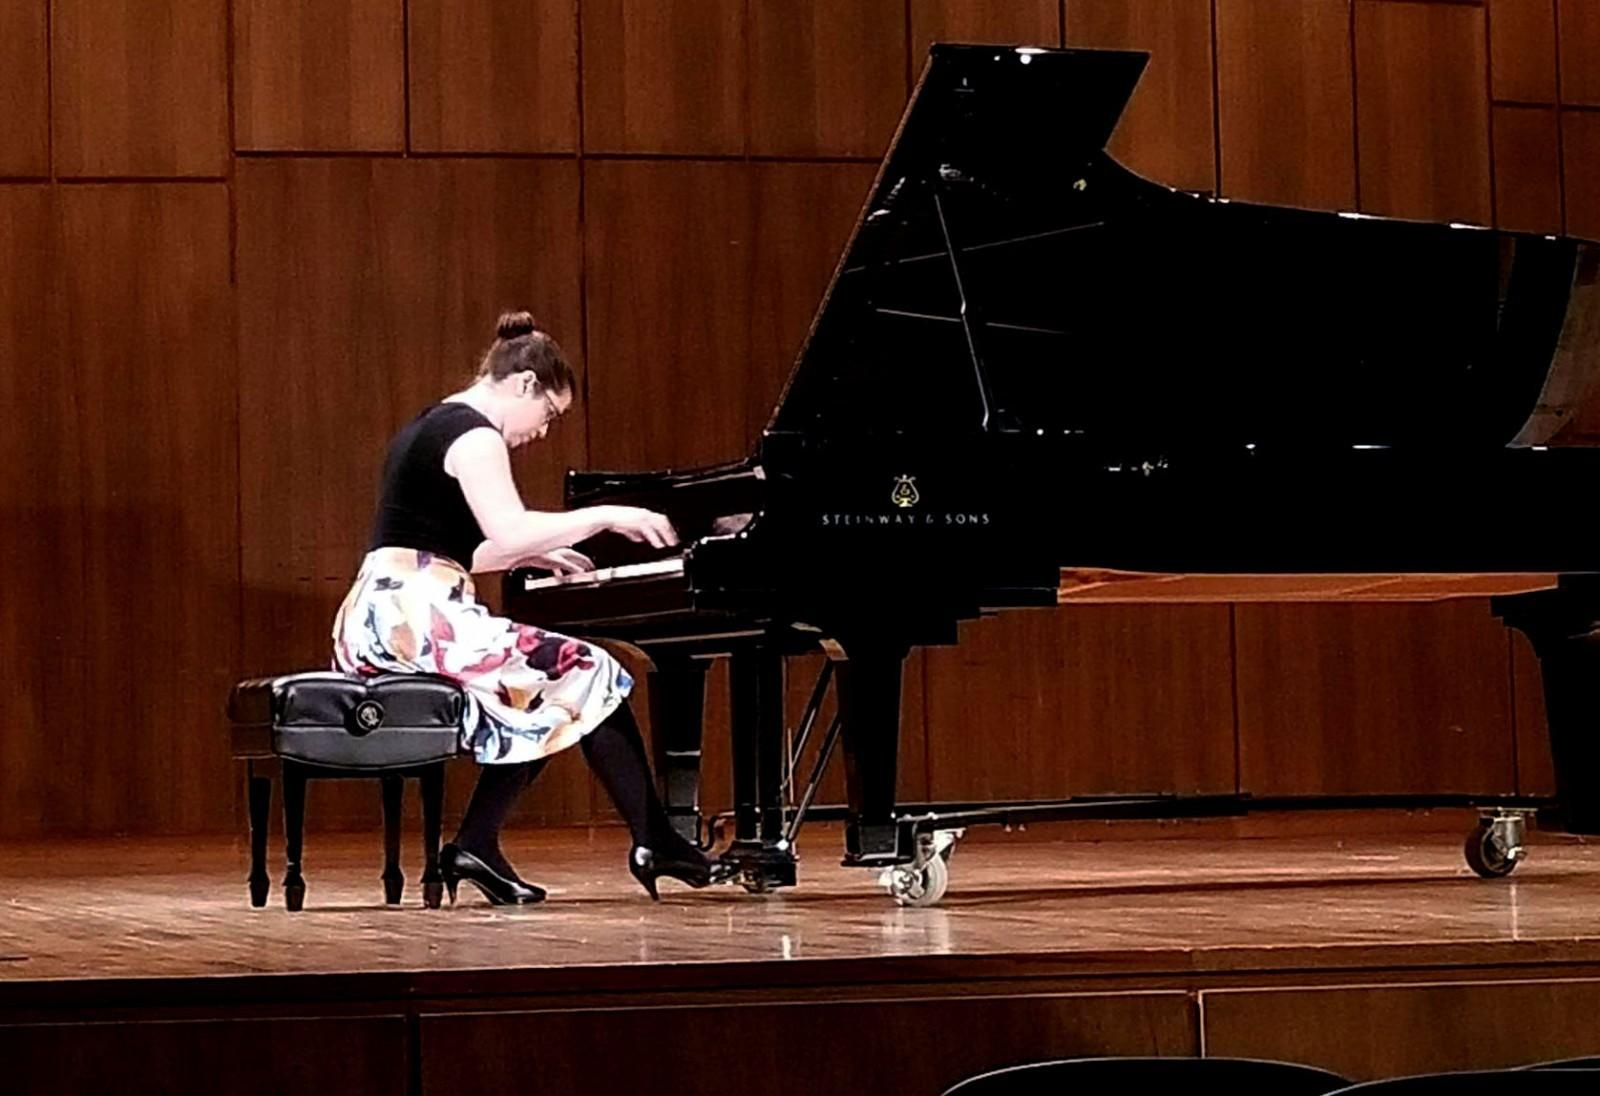 Koebbe plays a noteworthy performance at Wesleyan